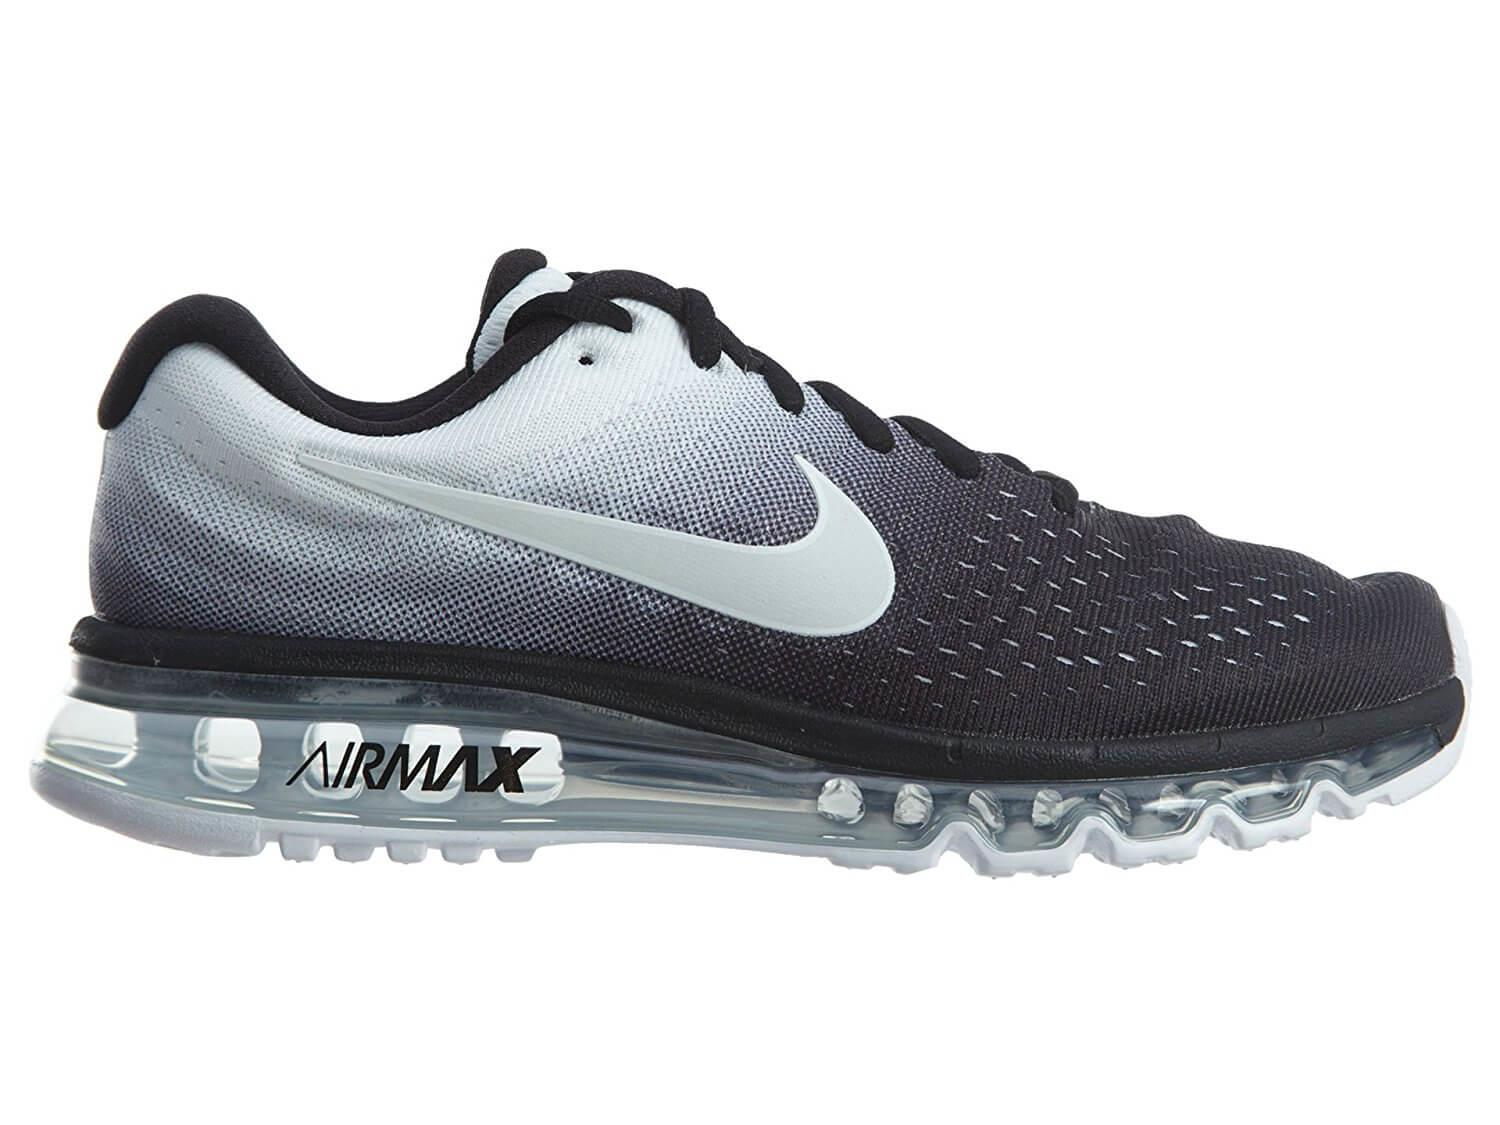 finest selection 8abde d10bc Nike Air Max 2017 Fully Reviewed and Compared